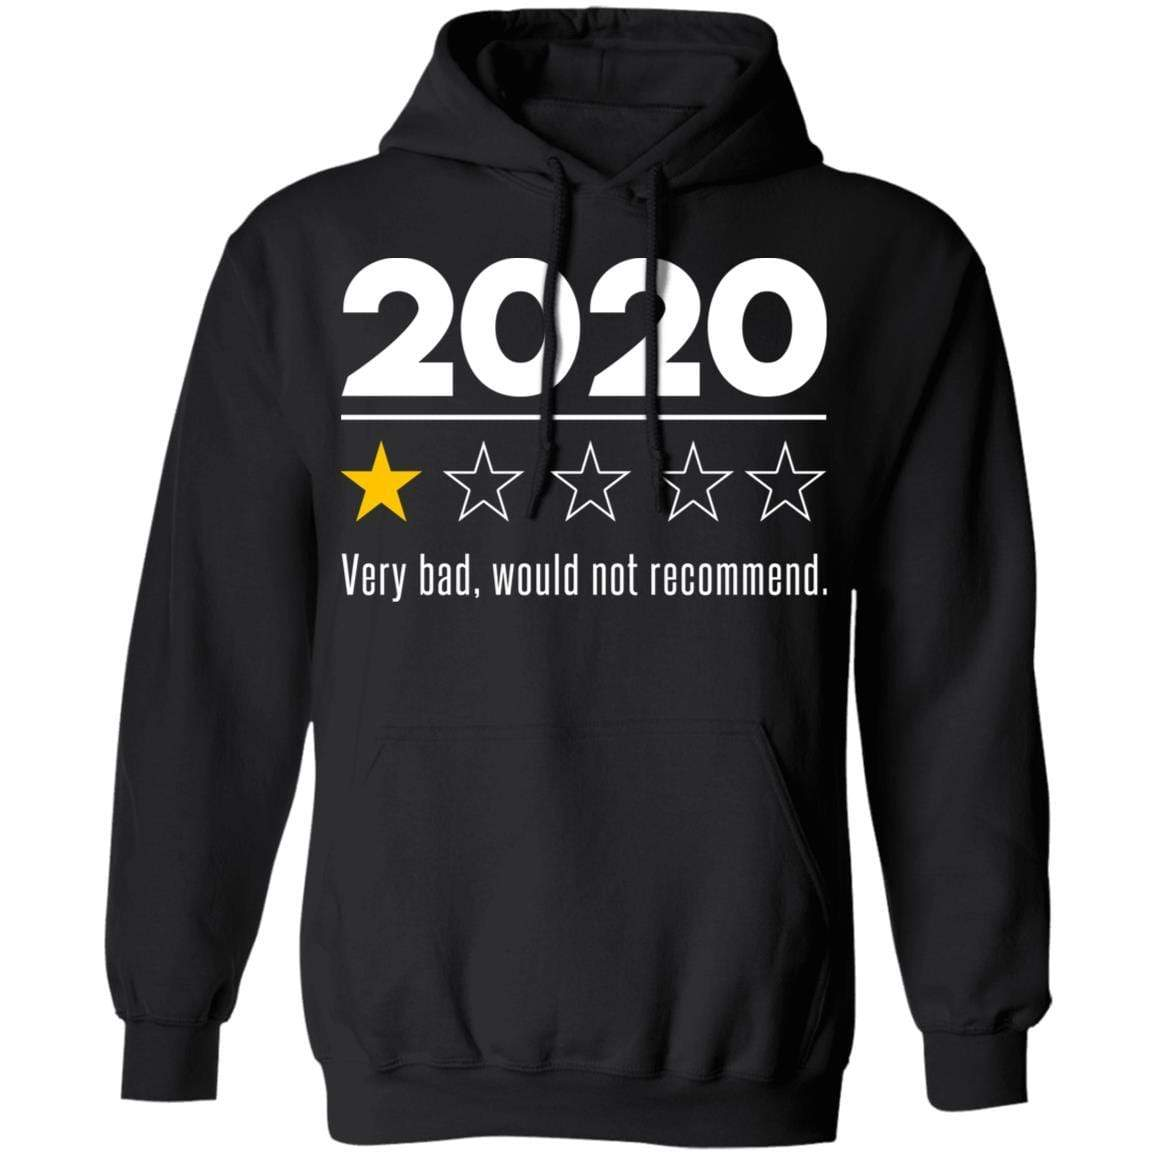 2020 This Year Very Bad Would Not Recommend T-Shirts, Hoodies 541-4740-88282840-23087 - Tee Ript